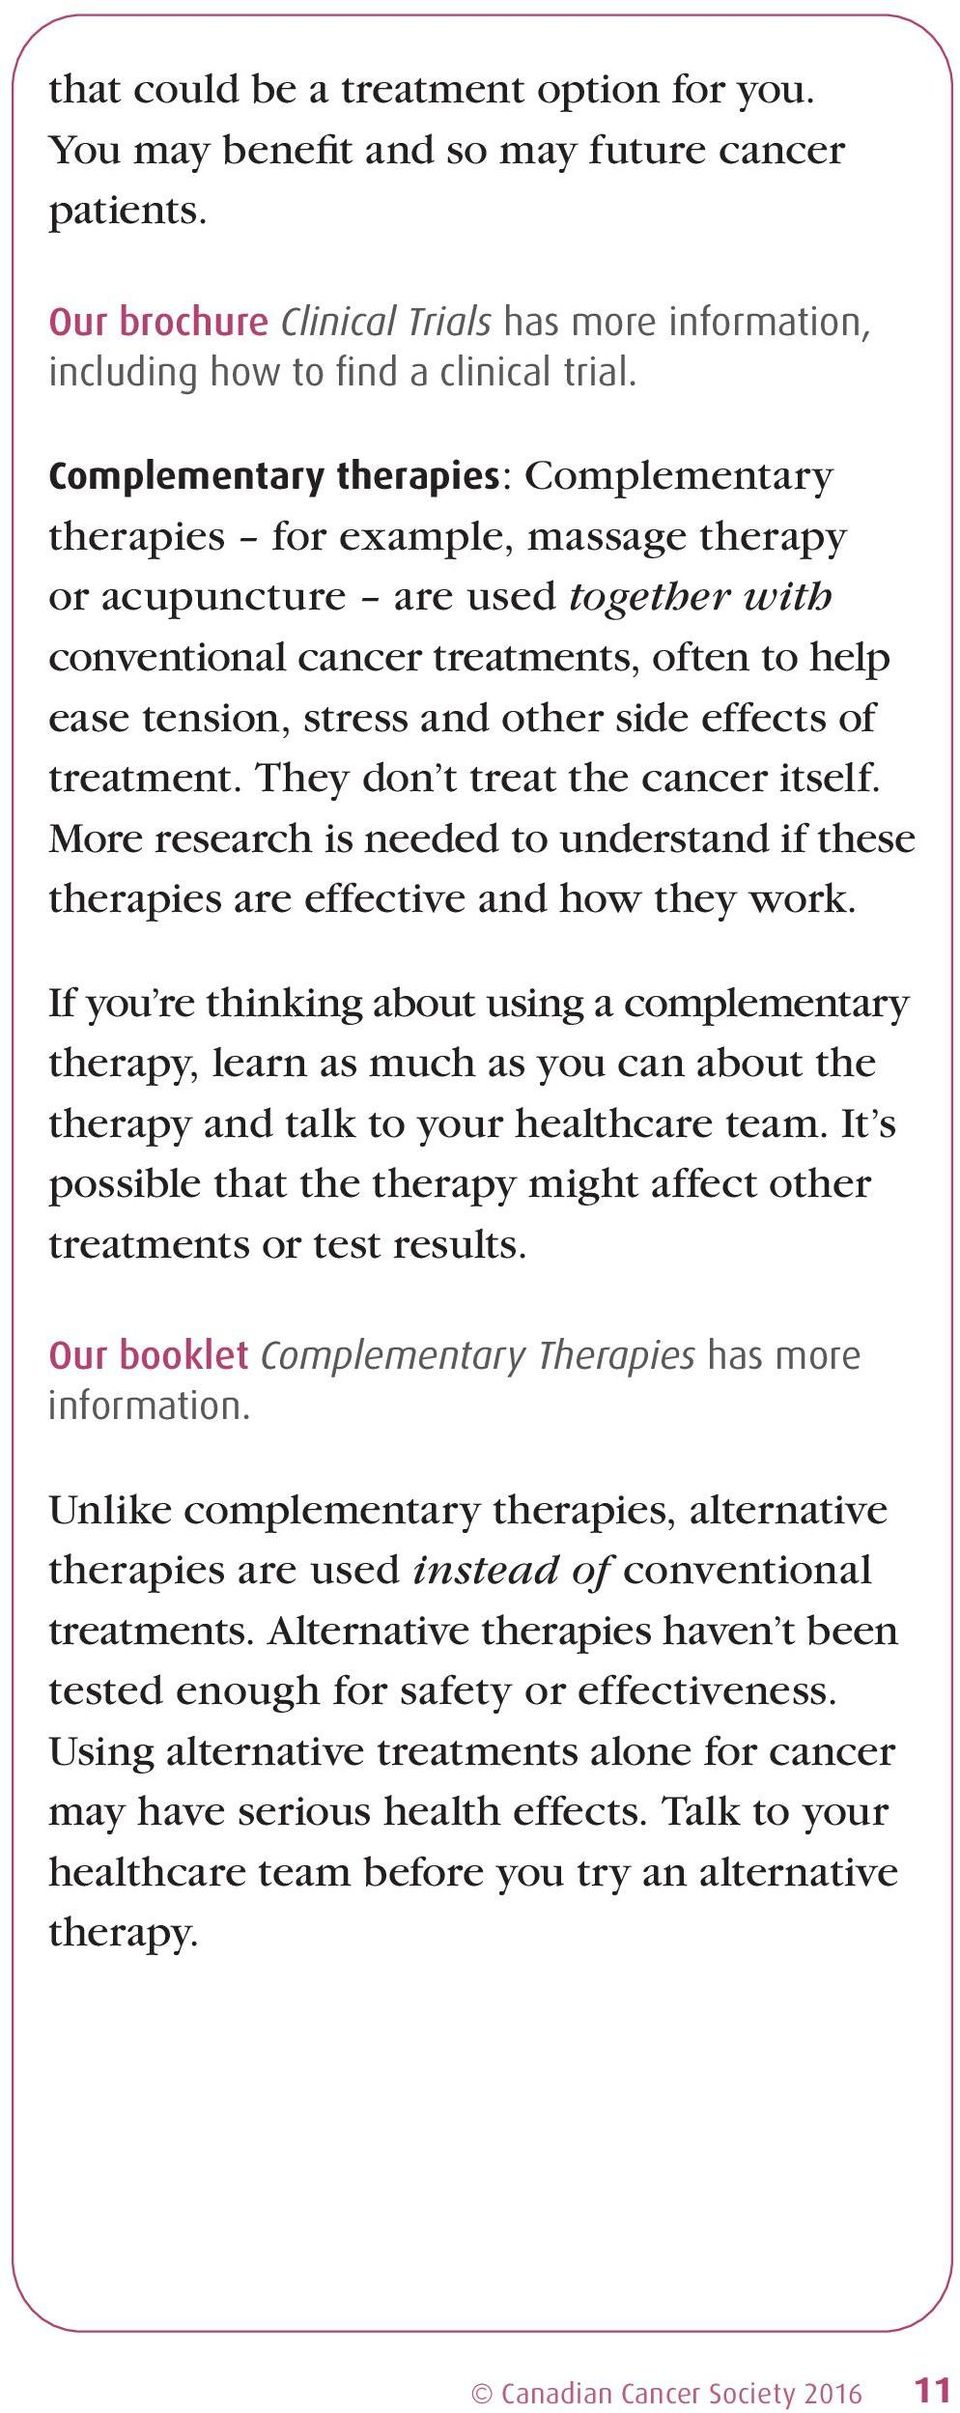 effects of treatment. They don t treat the cancer itself. More research is needed to understand if these therapies are effective and how they work.